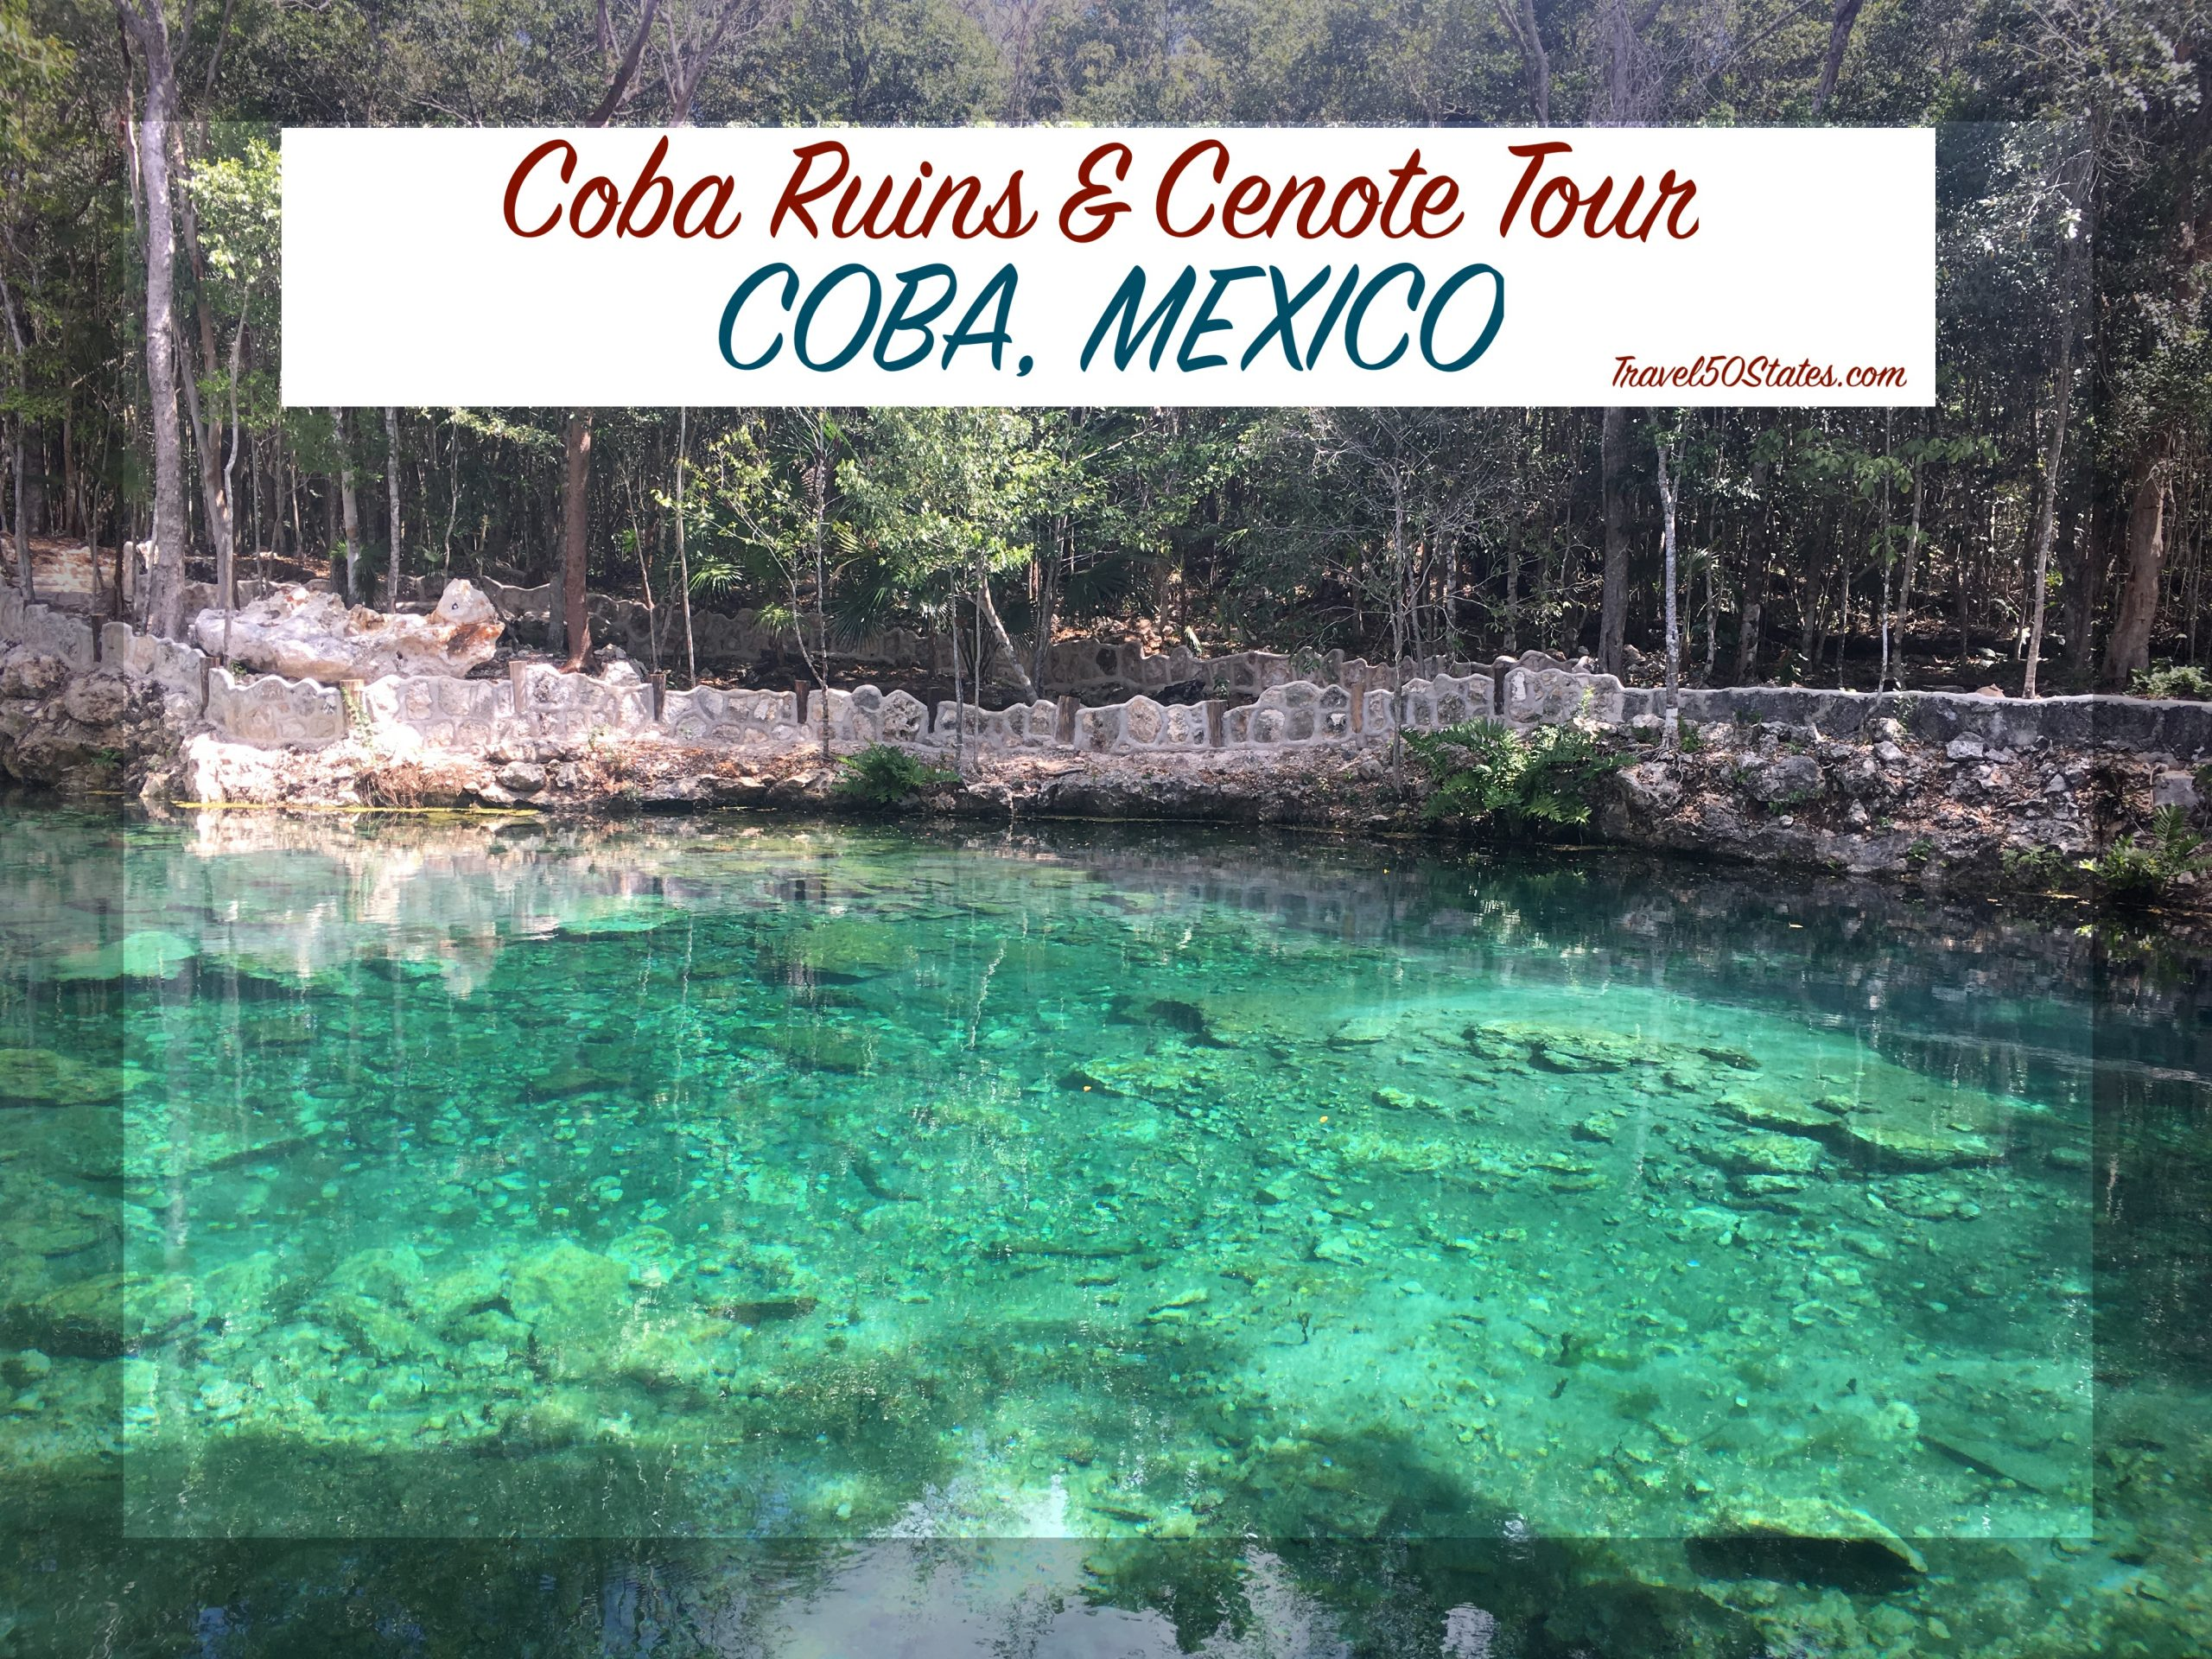 Coba Ruins and Cenote Tour, Mexico